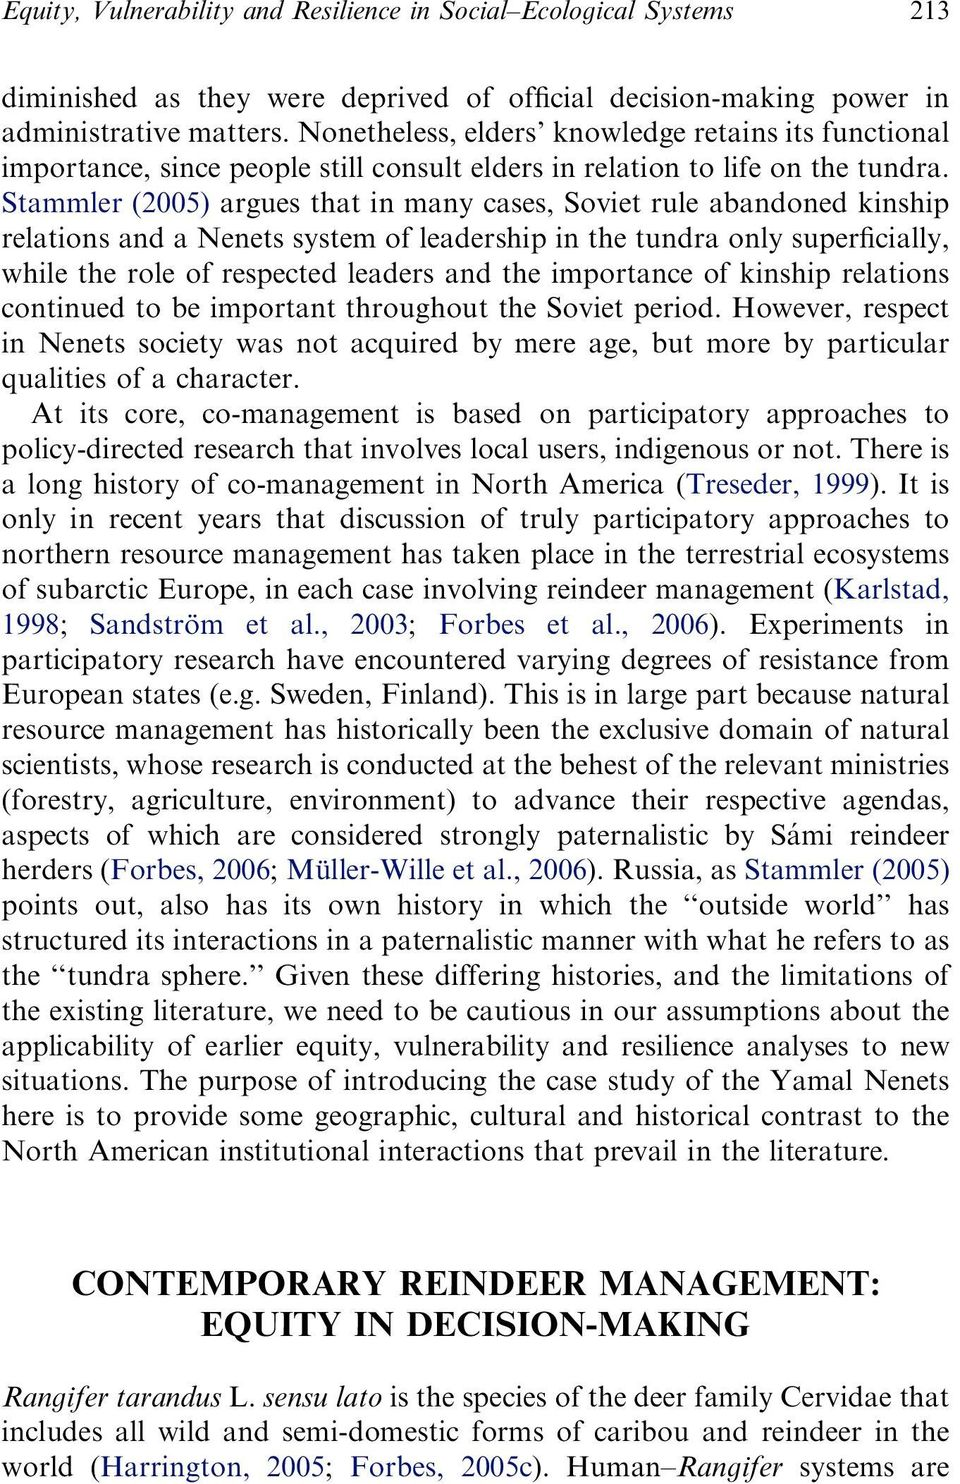 Stammler (2005) argues that in many cases, Soviet rule abandoned kinship relations and a Nenets system of leadership in the tundra only superficially, while the role of respected leaders and the